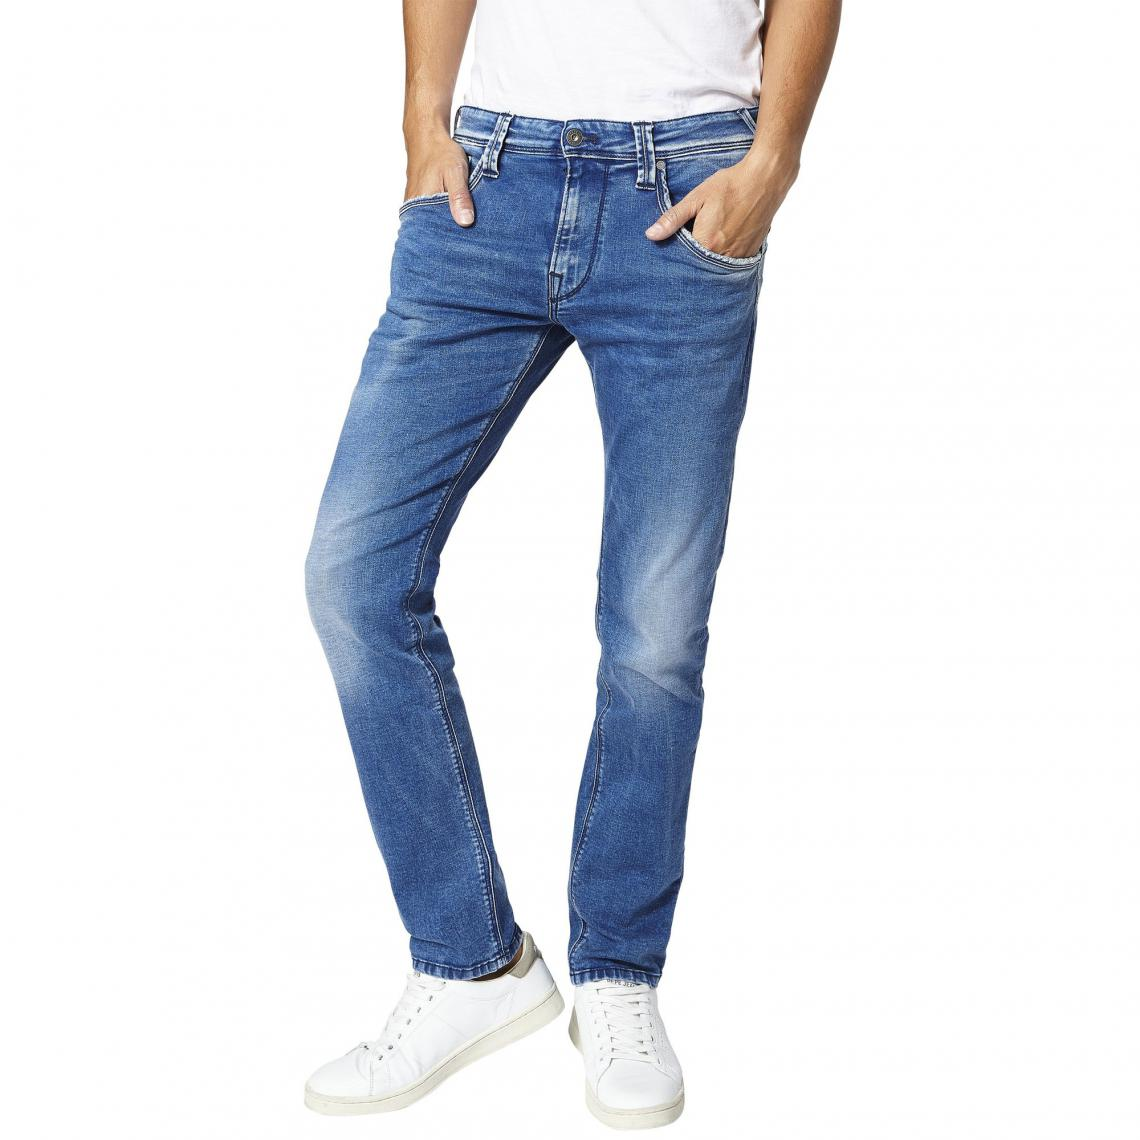 Jean droit L32 Zinc Trublu homme Pepe Jeans - Medium Used Pepe Jeans Homme 4adc2999a3ae